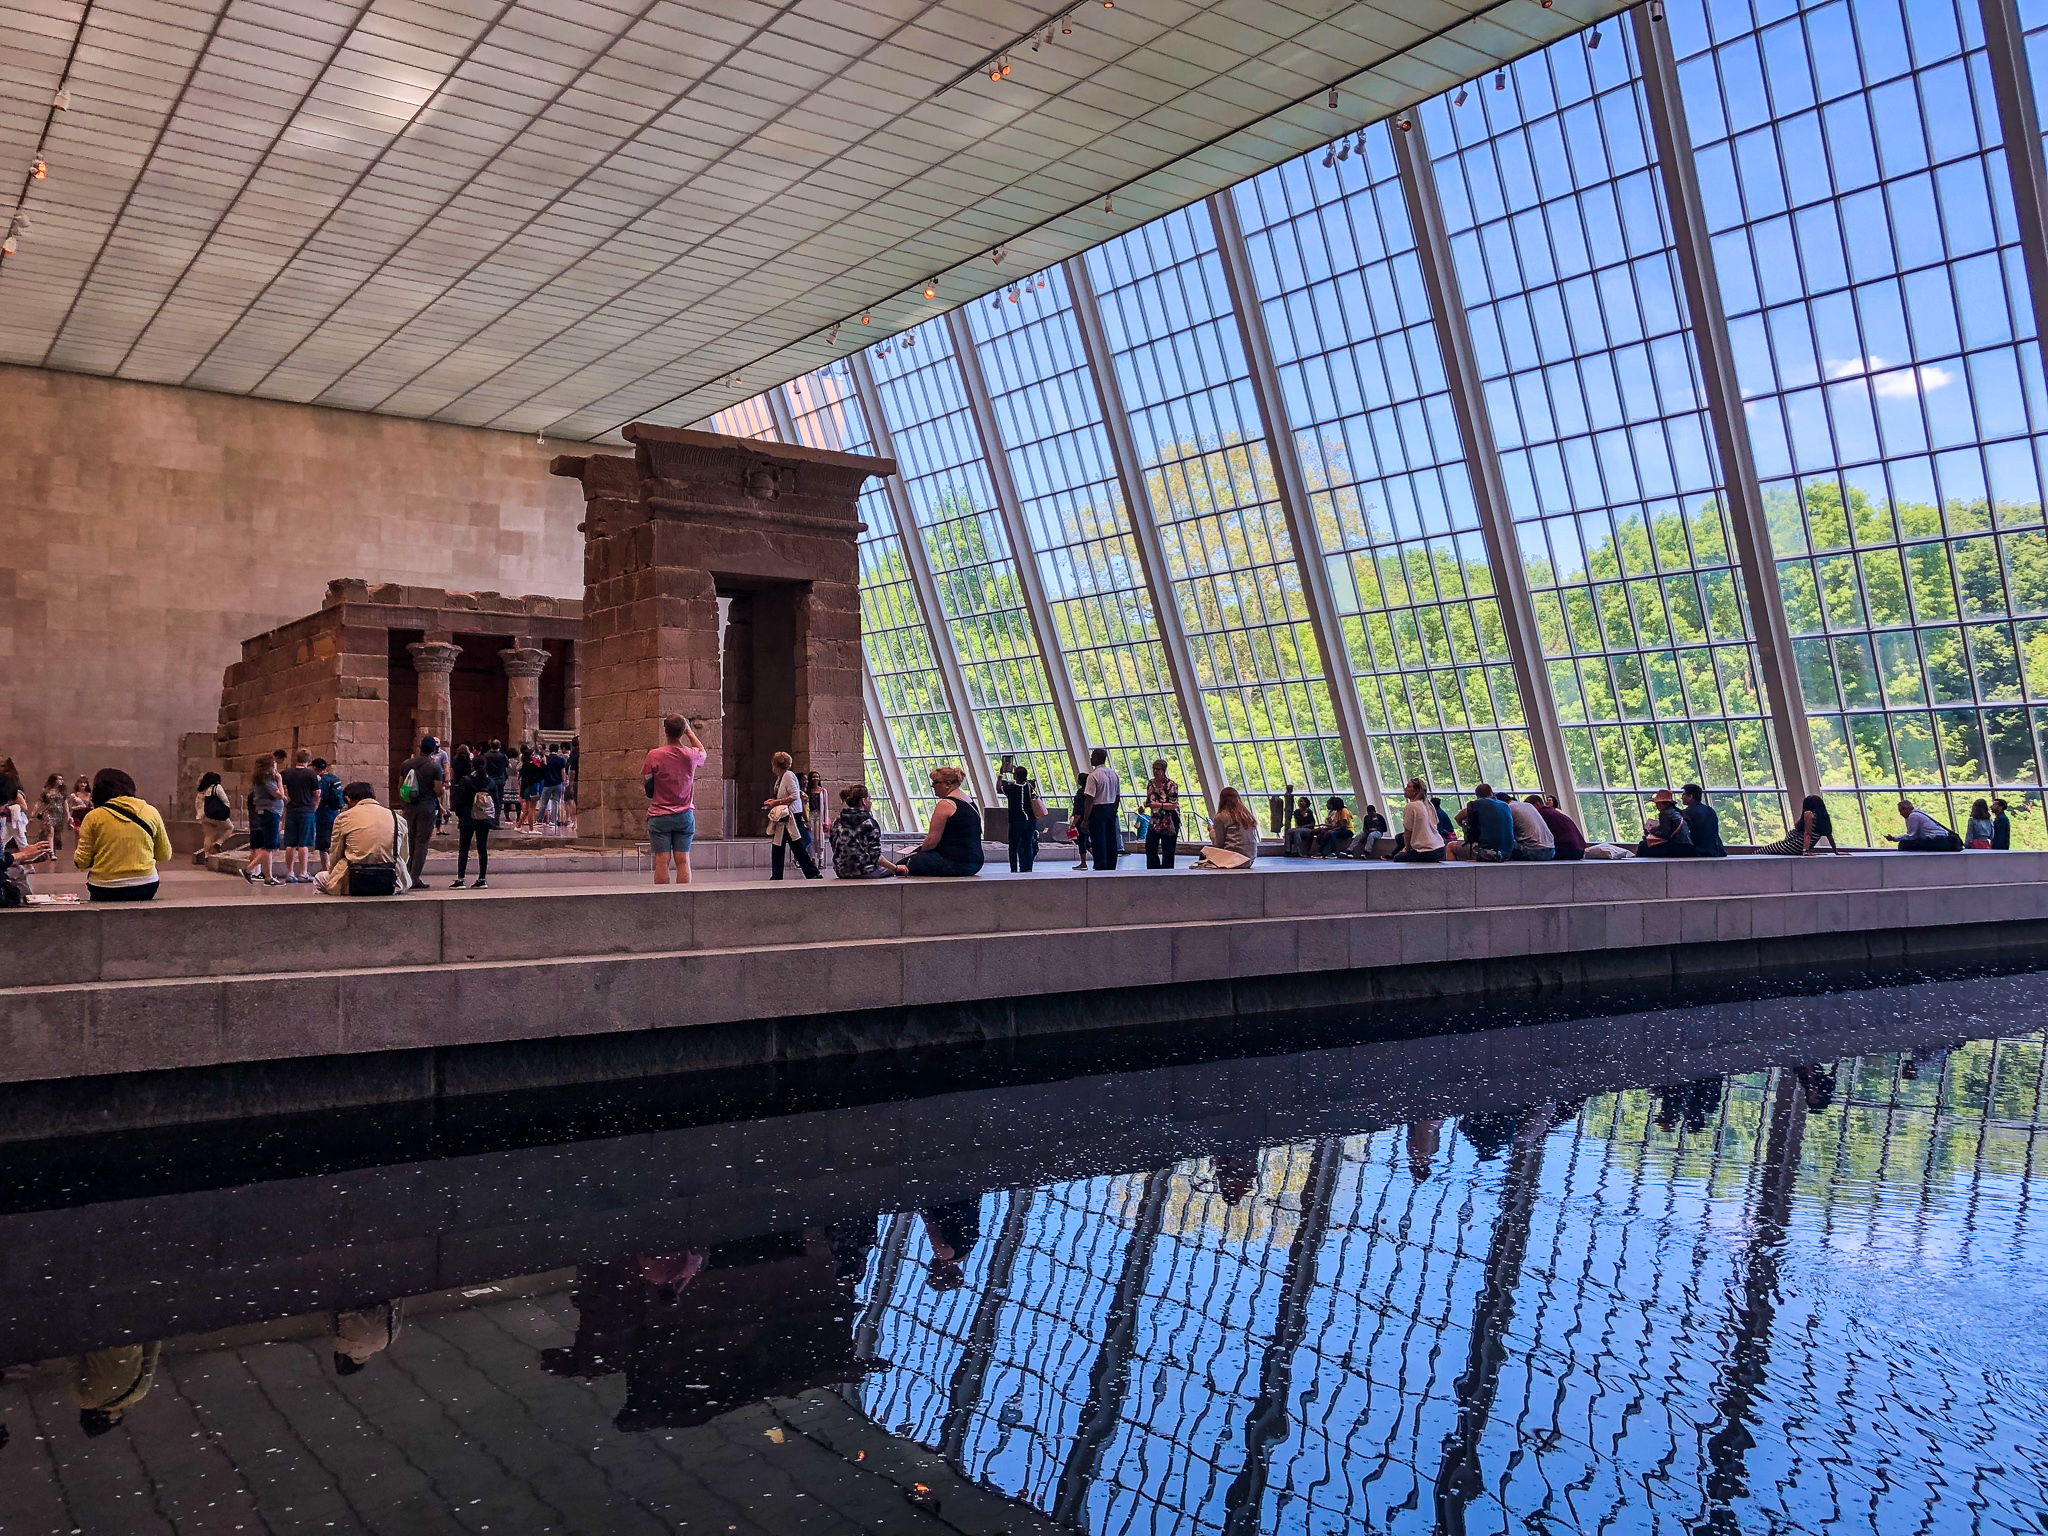 how to visit the metropolitan museum of art: don't skip the pyramids